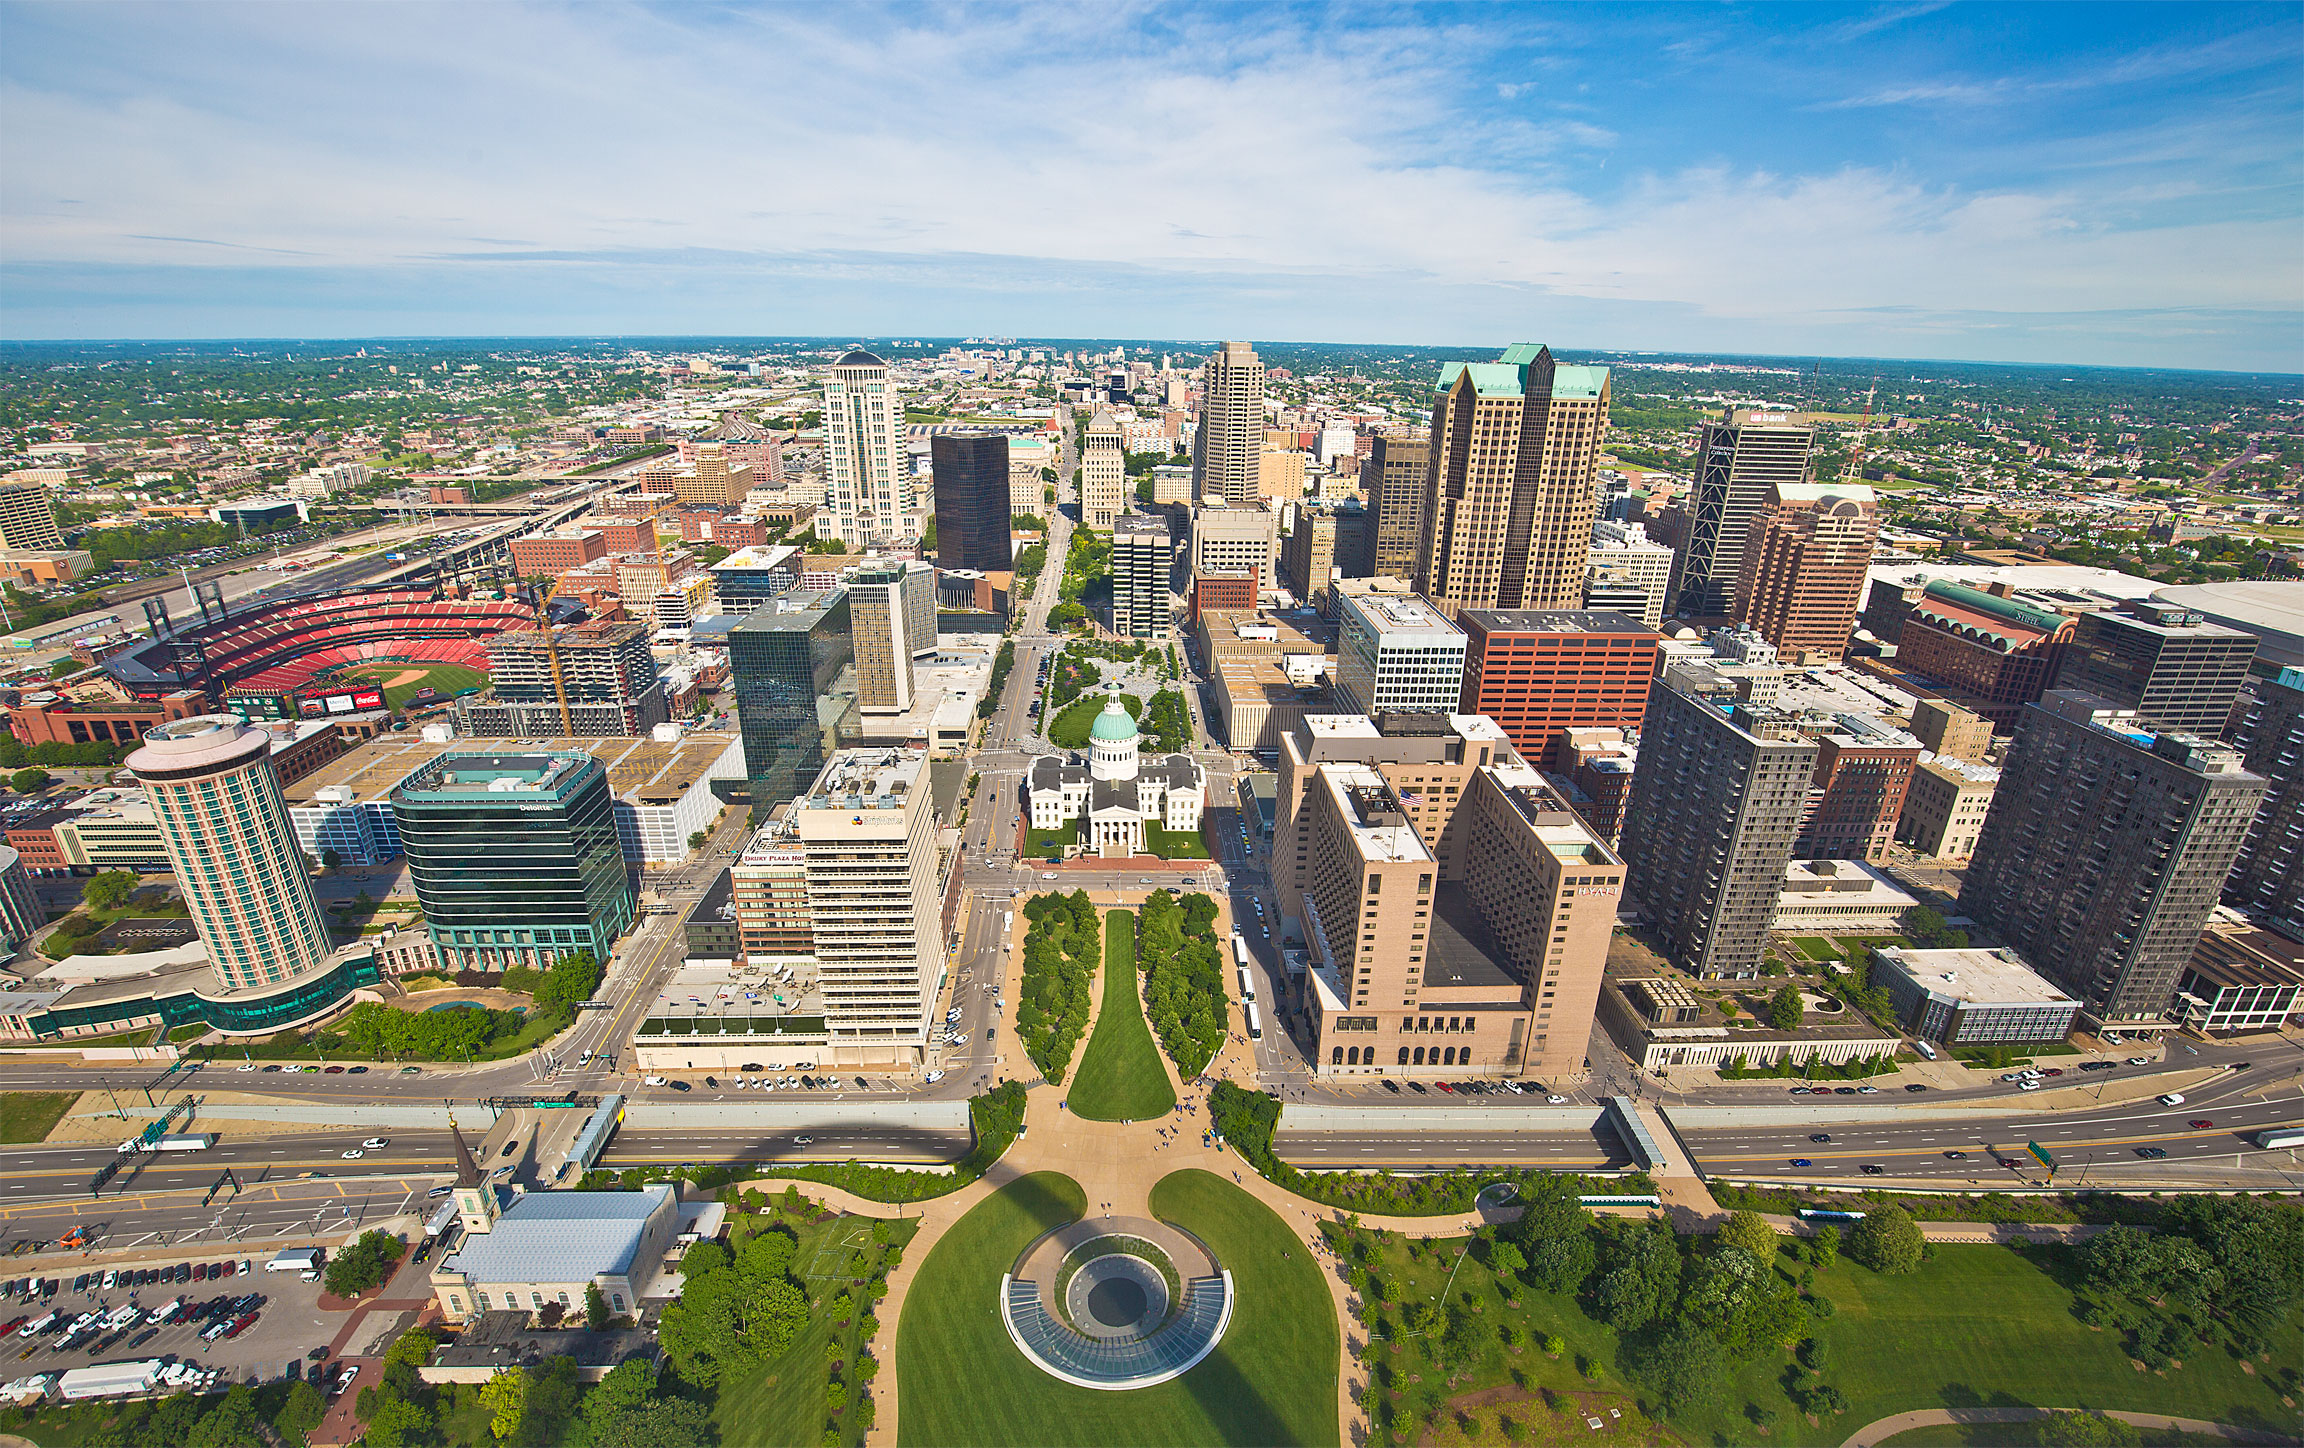 Top of the Arch Downtown Saint Louis